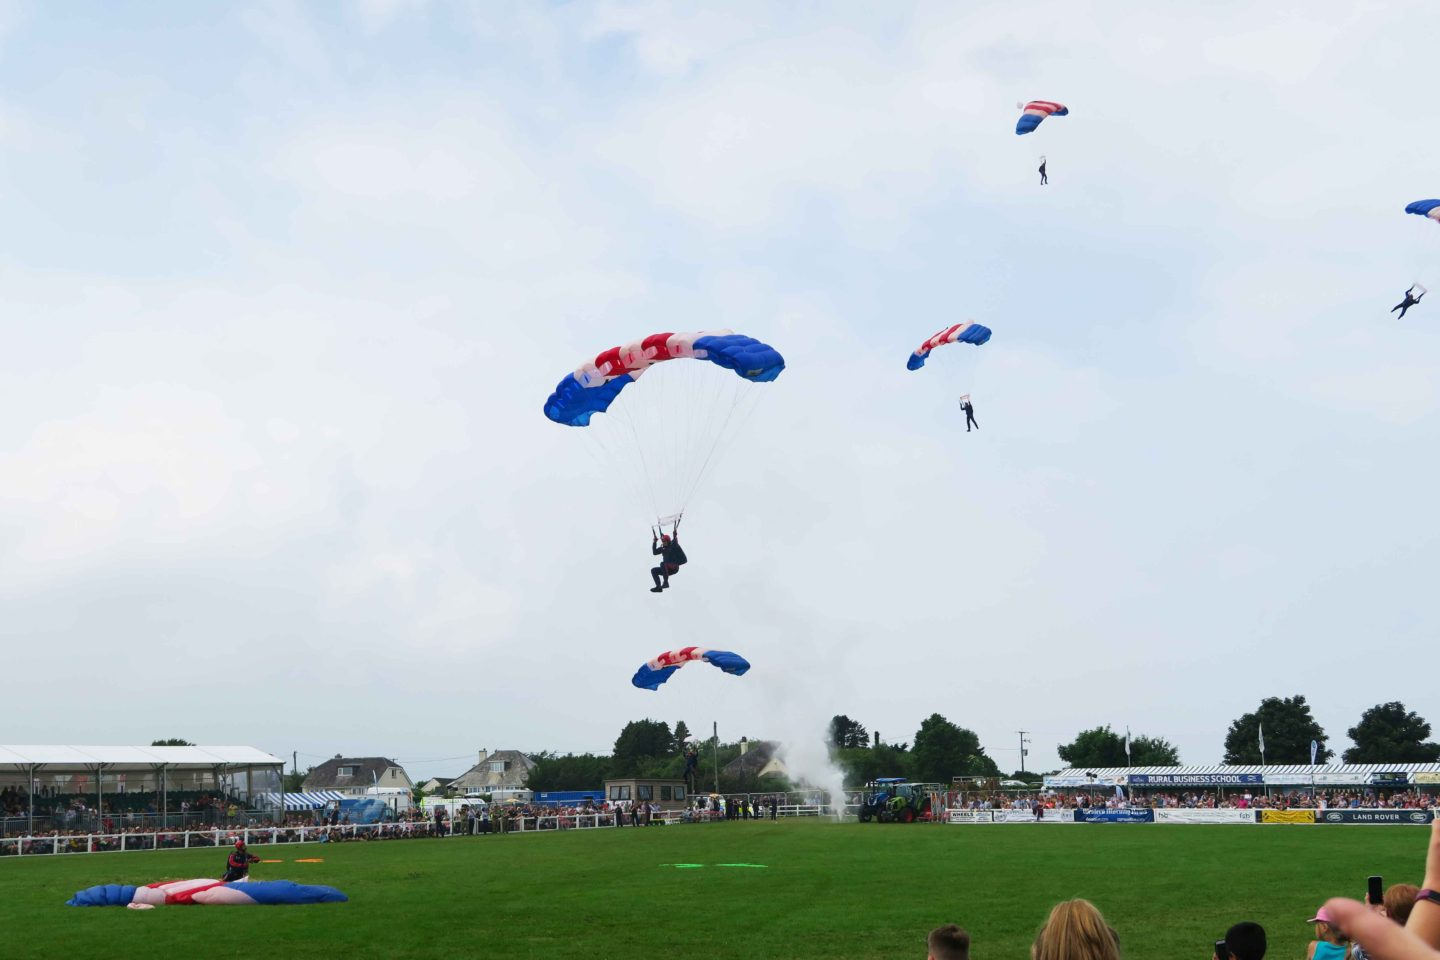 RAF parachuters at the royal cornwall show